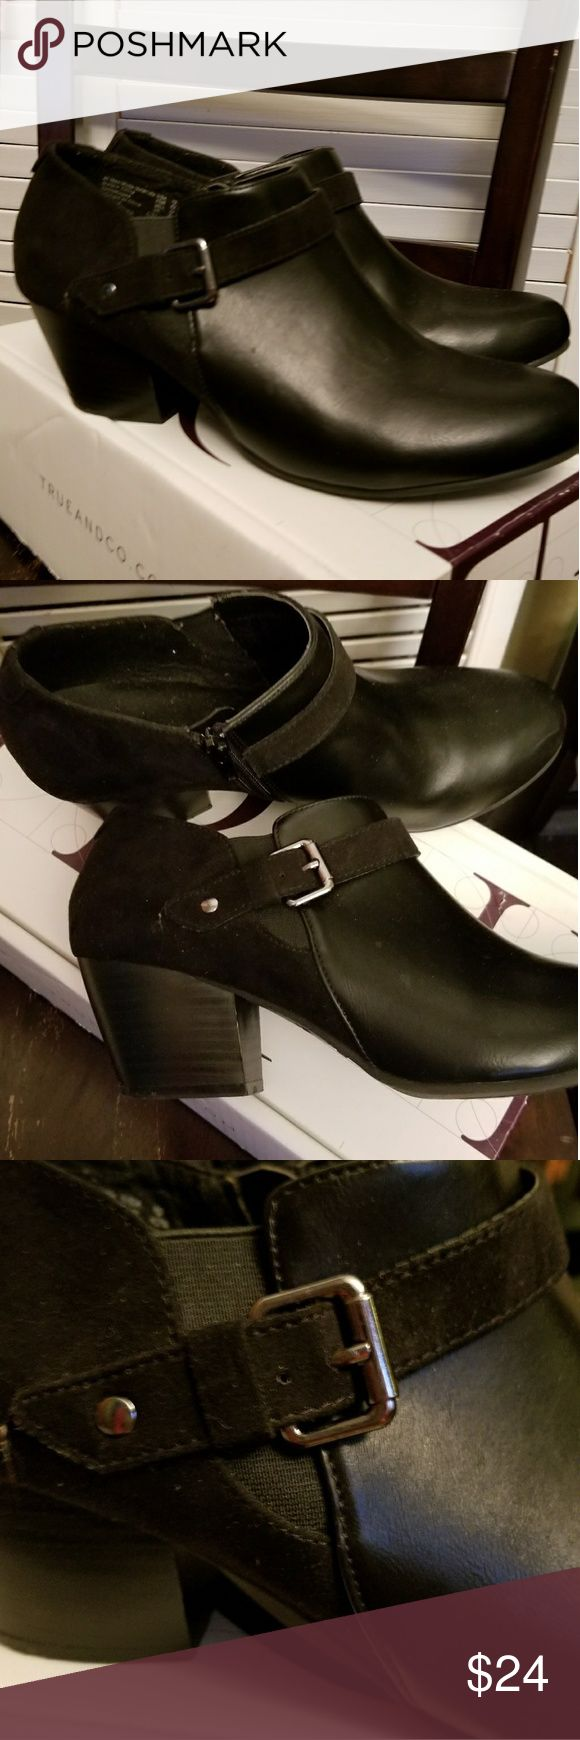 SALE 🍭 American Eagle black suede & vegan booties GUC Ladies sz 10 black American Eagle booties suede/ vegan leather (man made). See photos for few scuffs at toe. Only worn twice. American Eagle By Payless Shoes Ankle Boots & Booties